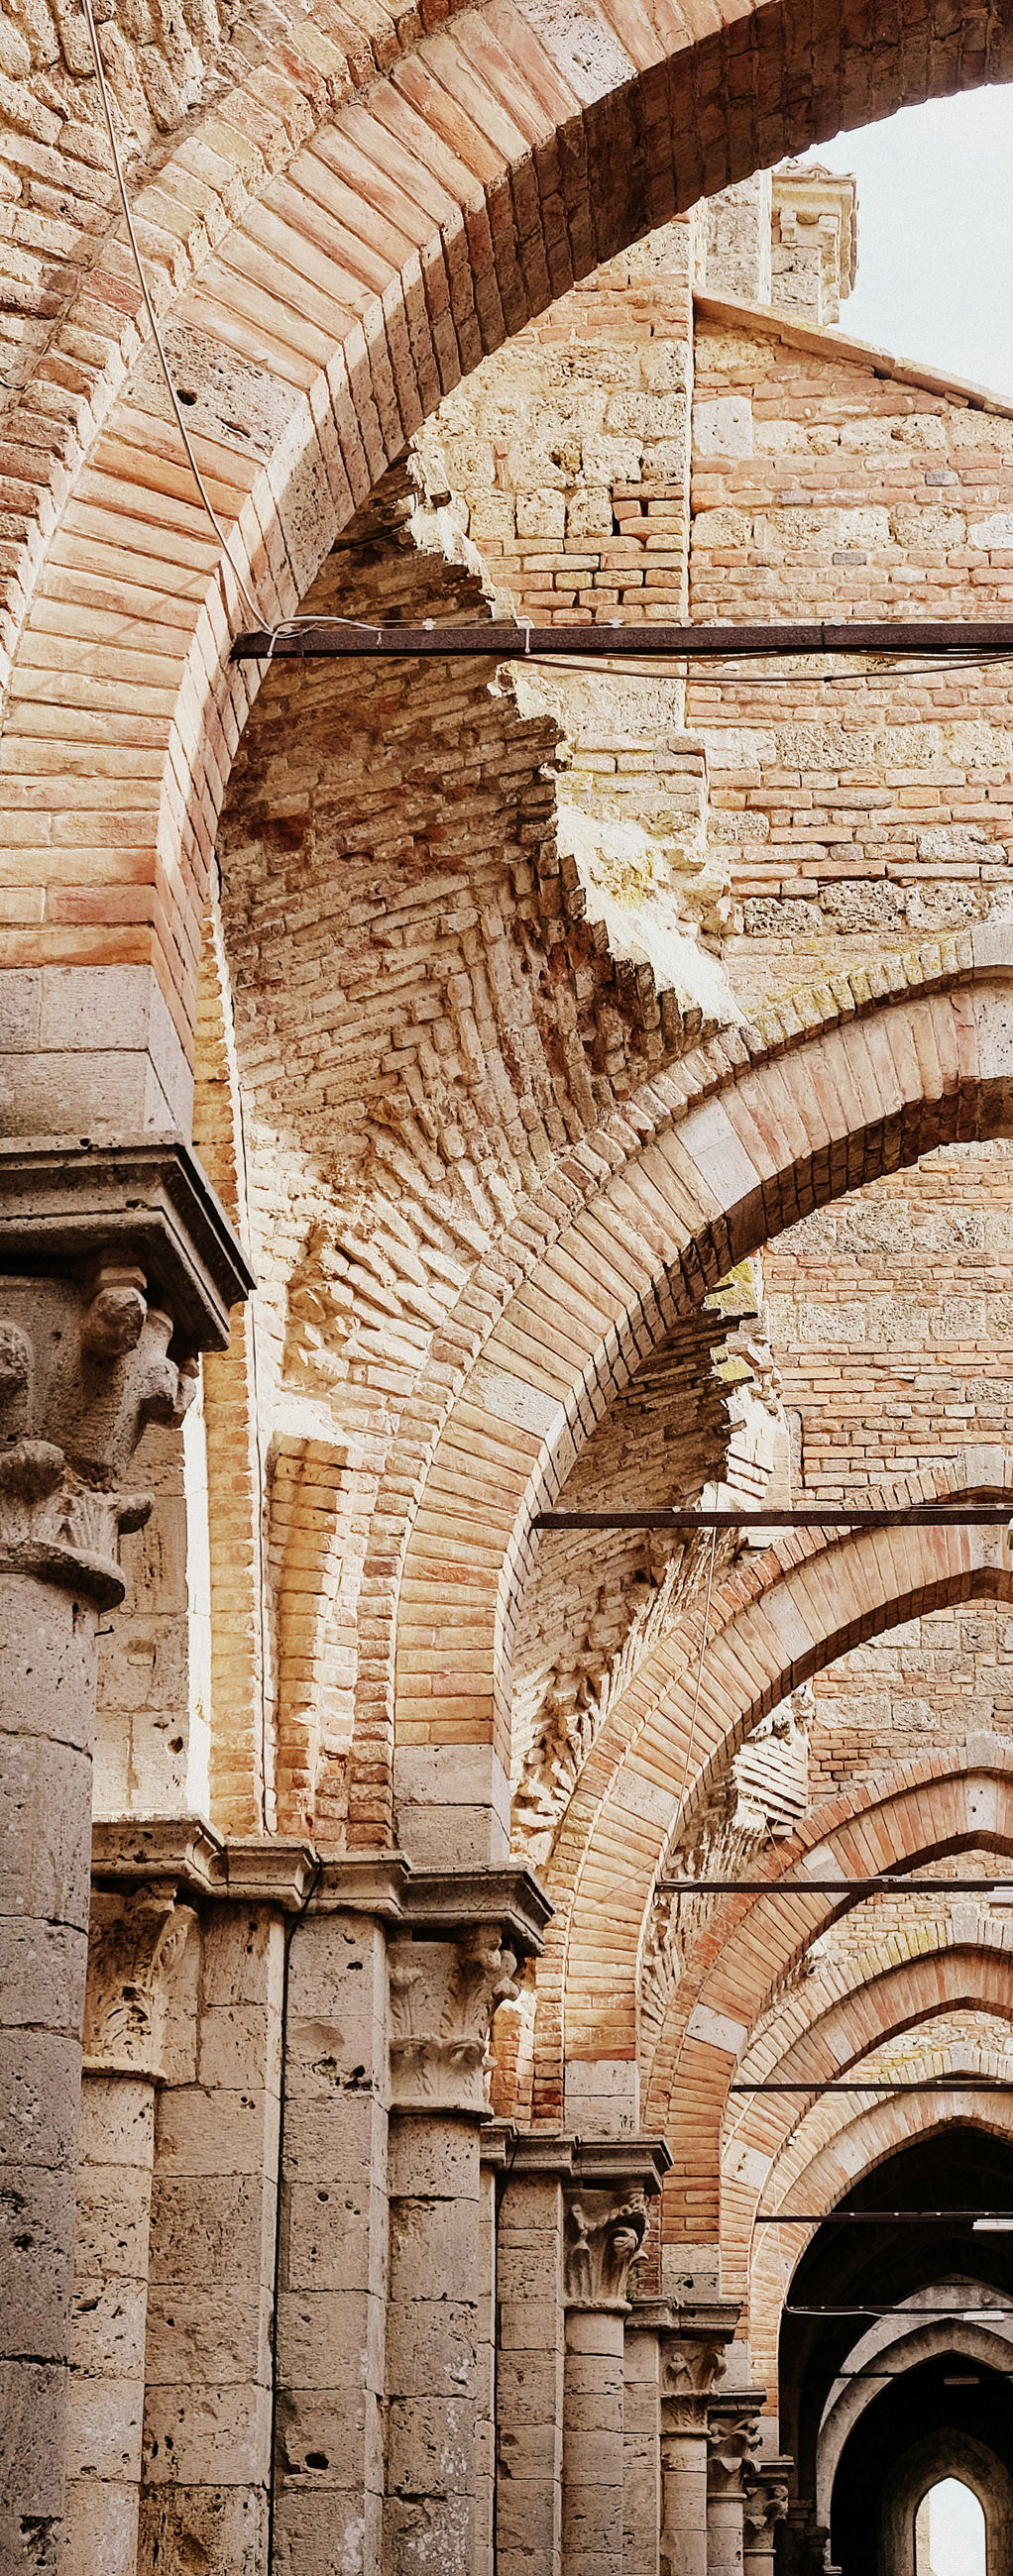 arch, architecture, history, the past, built structure, travel destinations, no people, indoors, old, low angle view, day, building, arcade, ancient, pattern, tourism, architectural column, travel, wall, ceiling, ornate, ancient civilization